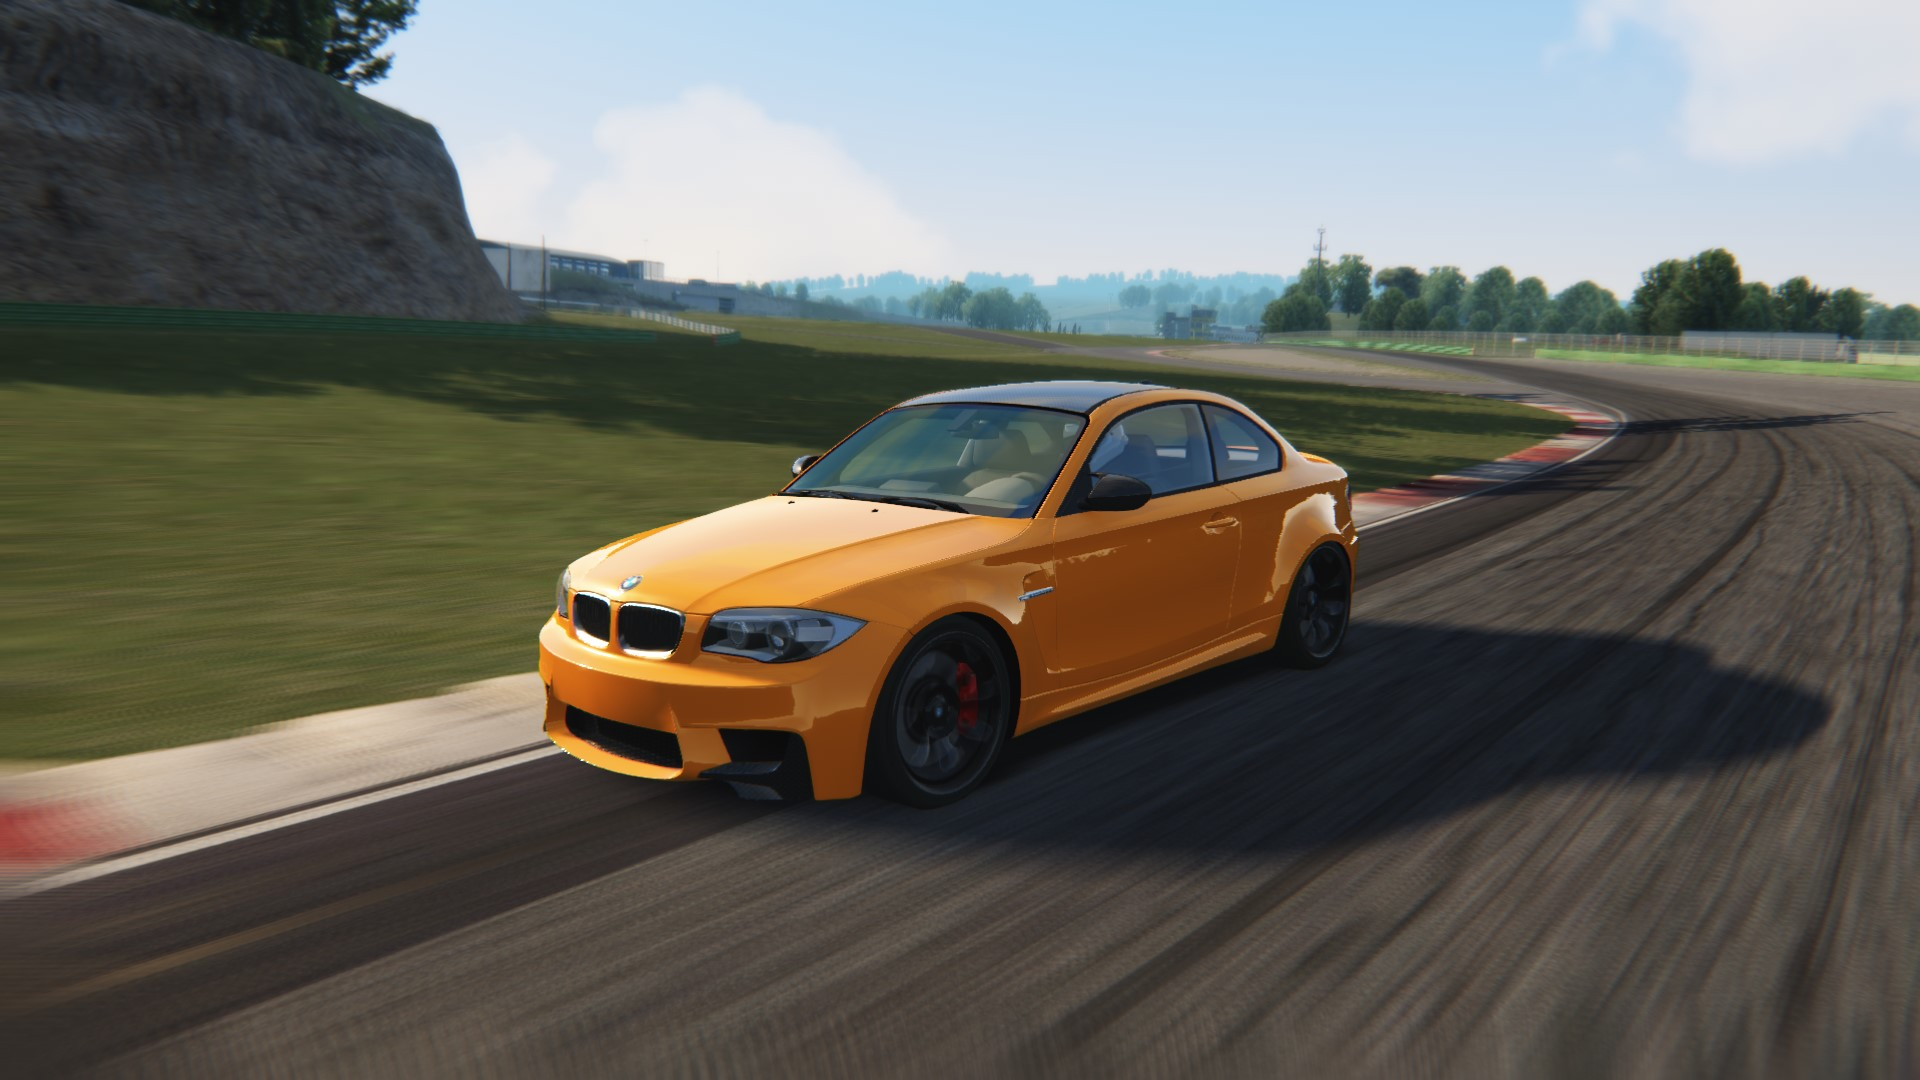 Screenshot_bmw_1m_vallelunga_3-2-2015-13-40-0.jpg